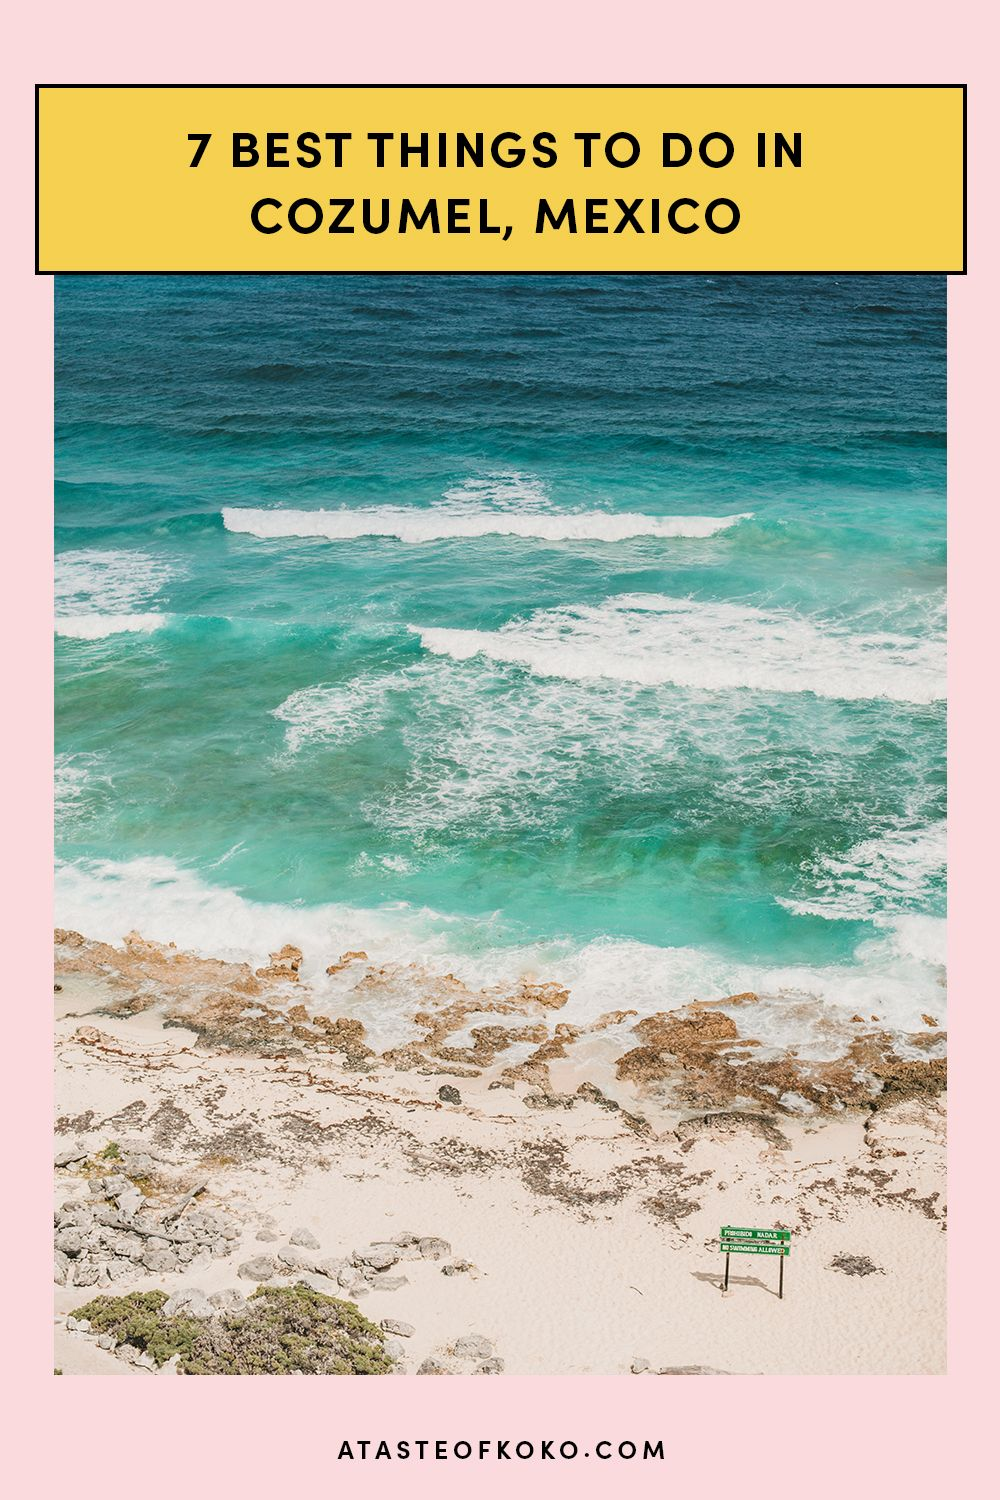 7 Best Things To Do In Cozumel Mexico Mexico Travel Cozumel